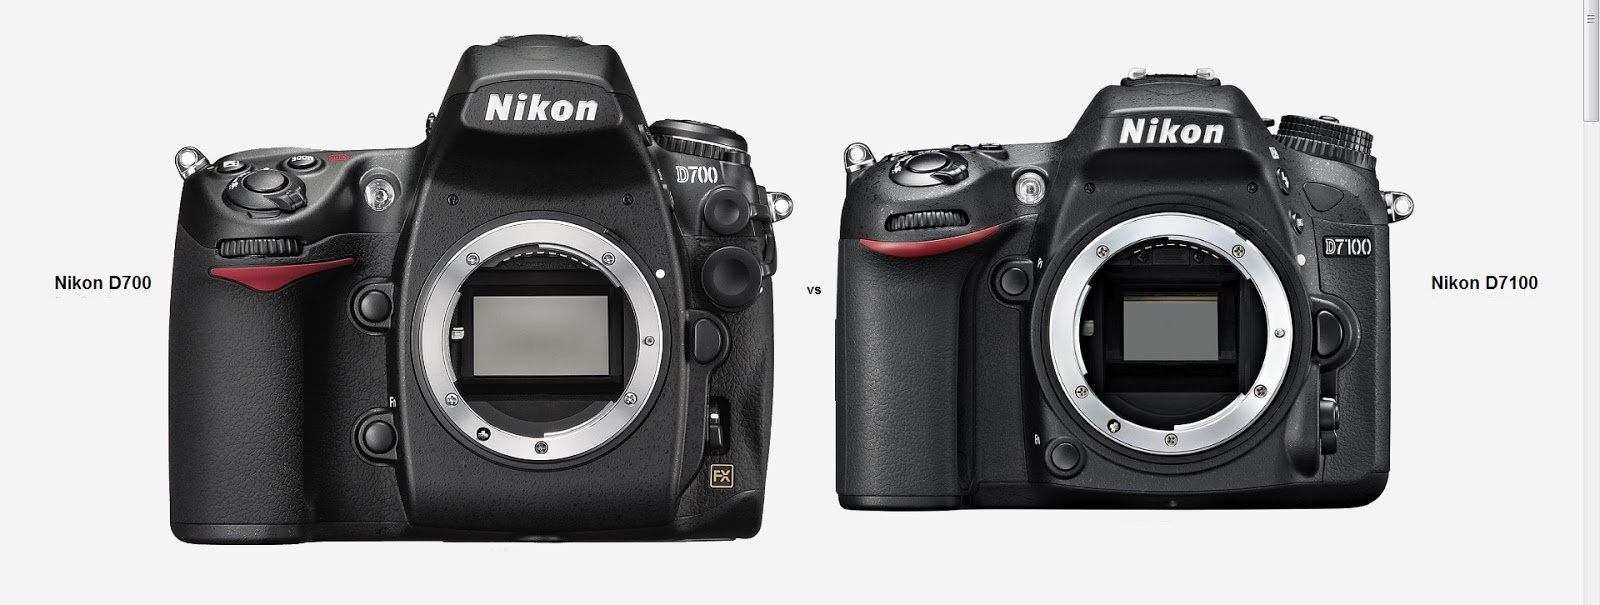 how to clean sensor on nikon d7100